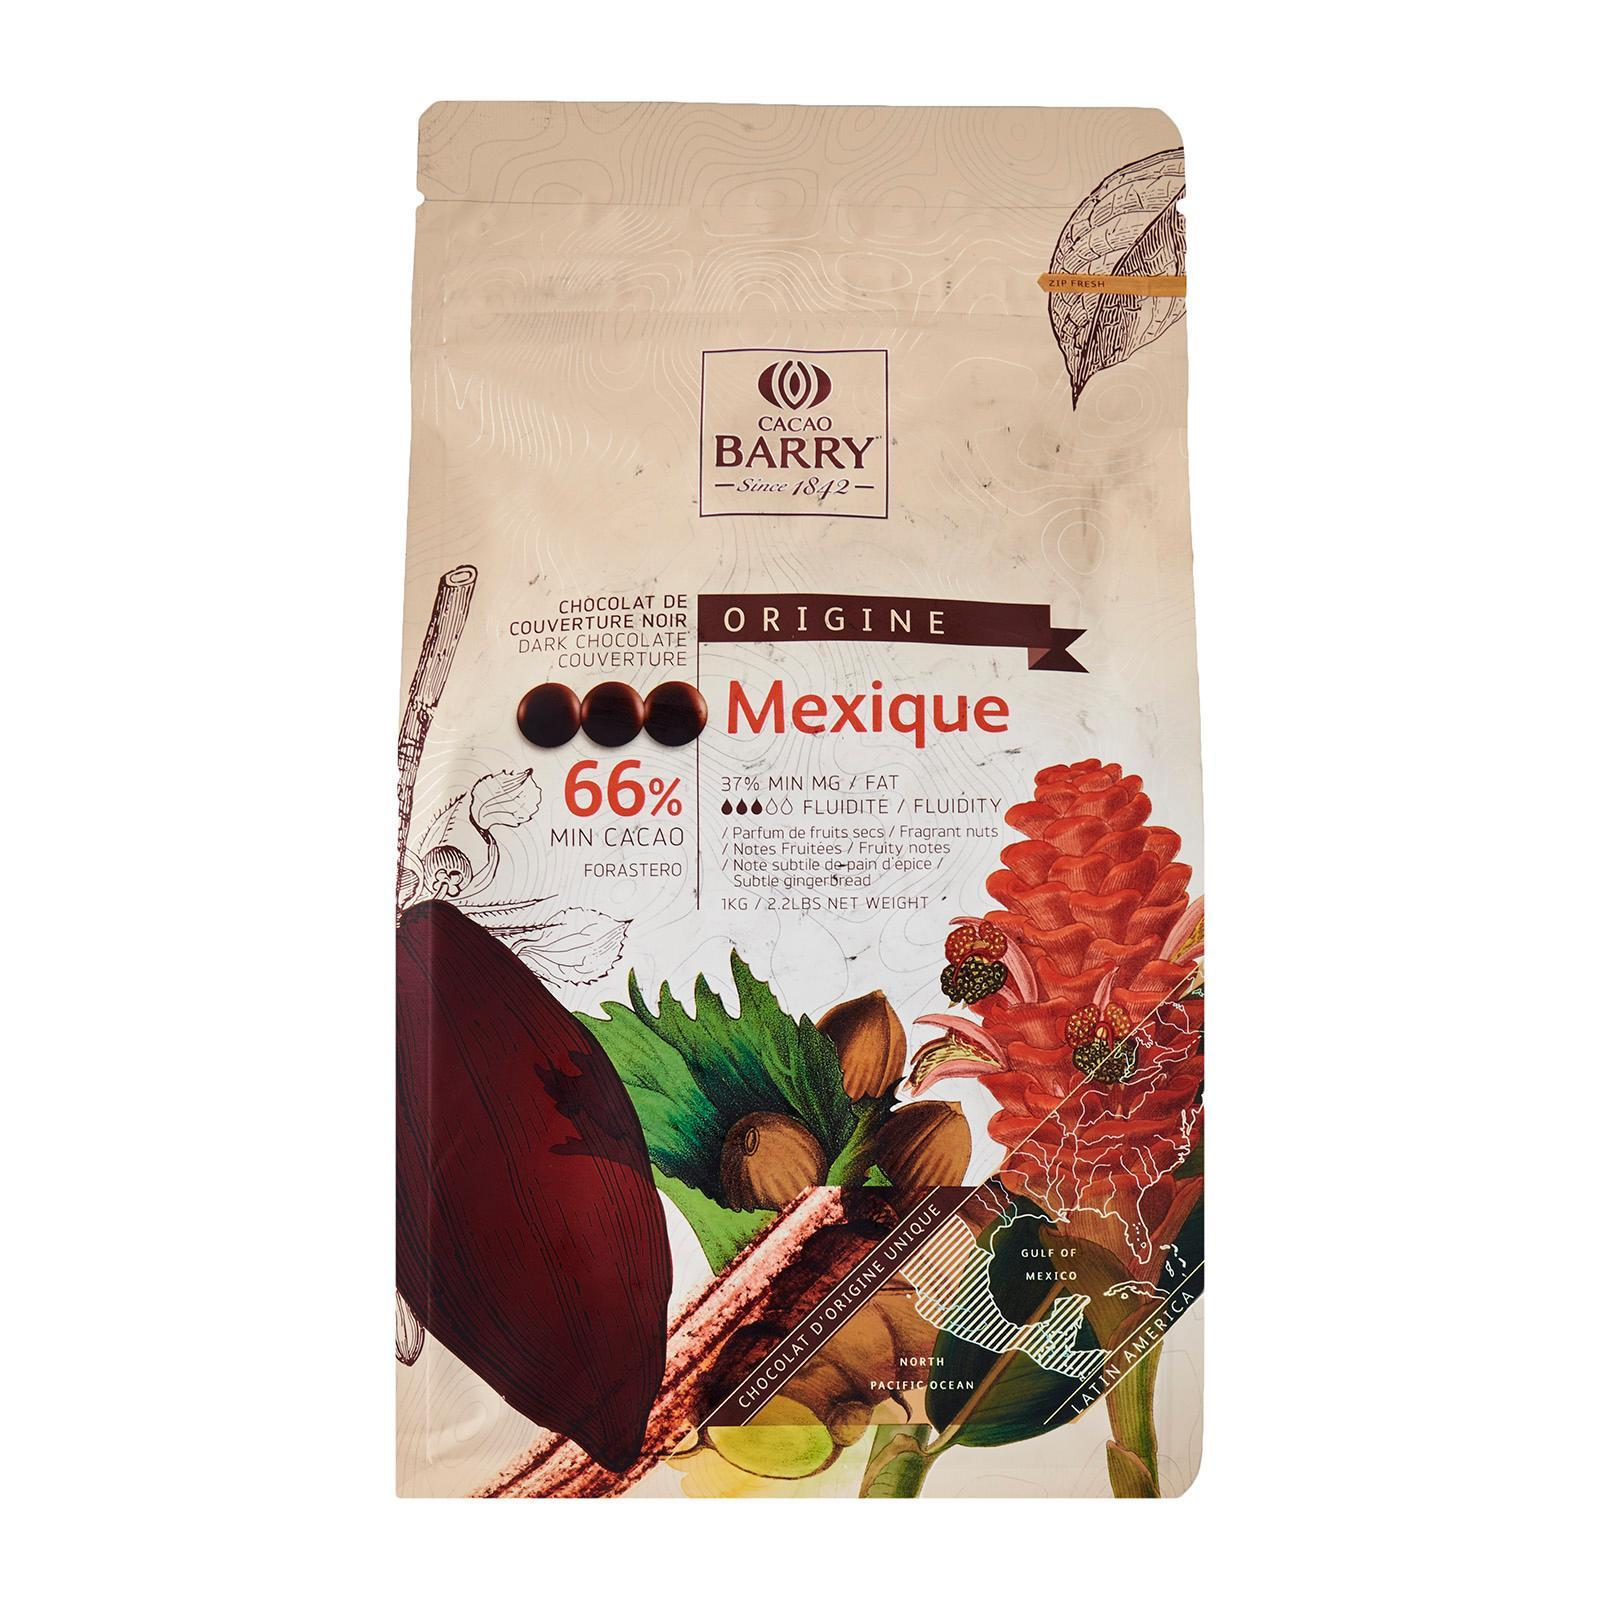 Cacao Barry Choc Couv Dark Cocoa 66% Pistoles - Mexique By Redmart.